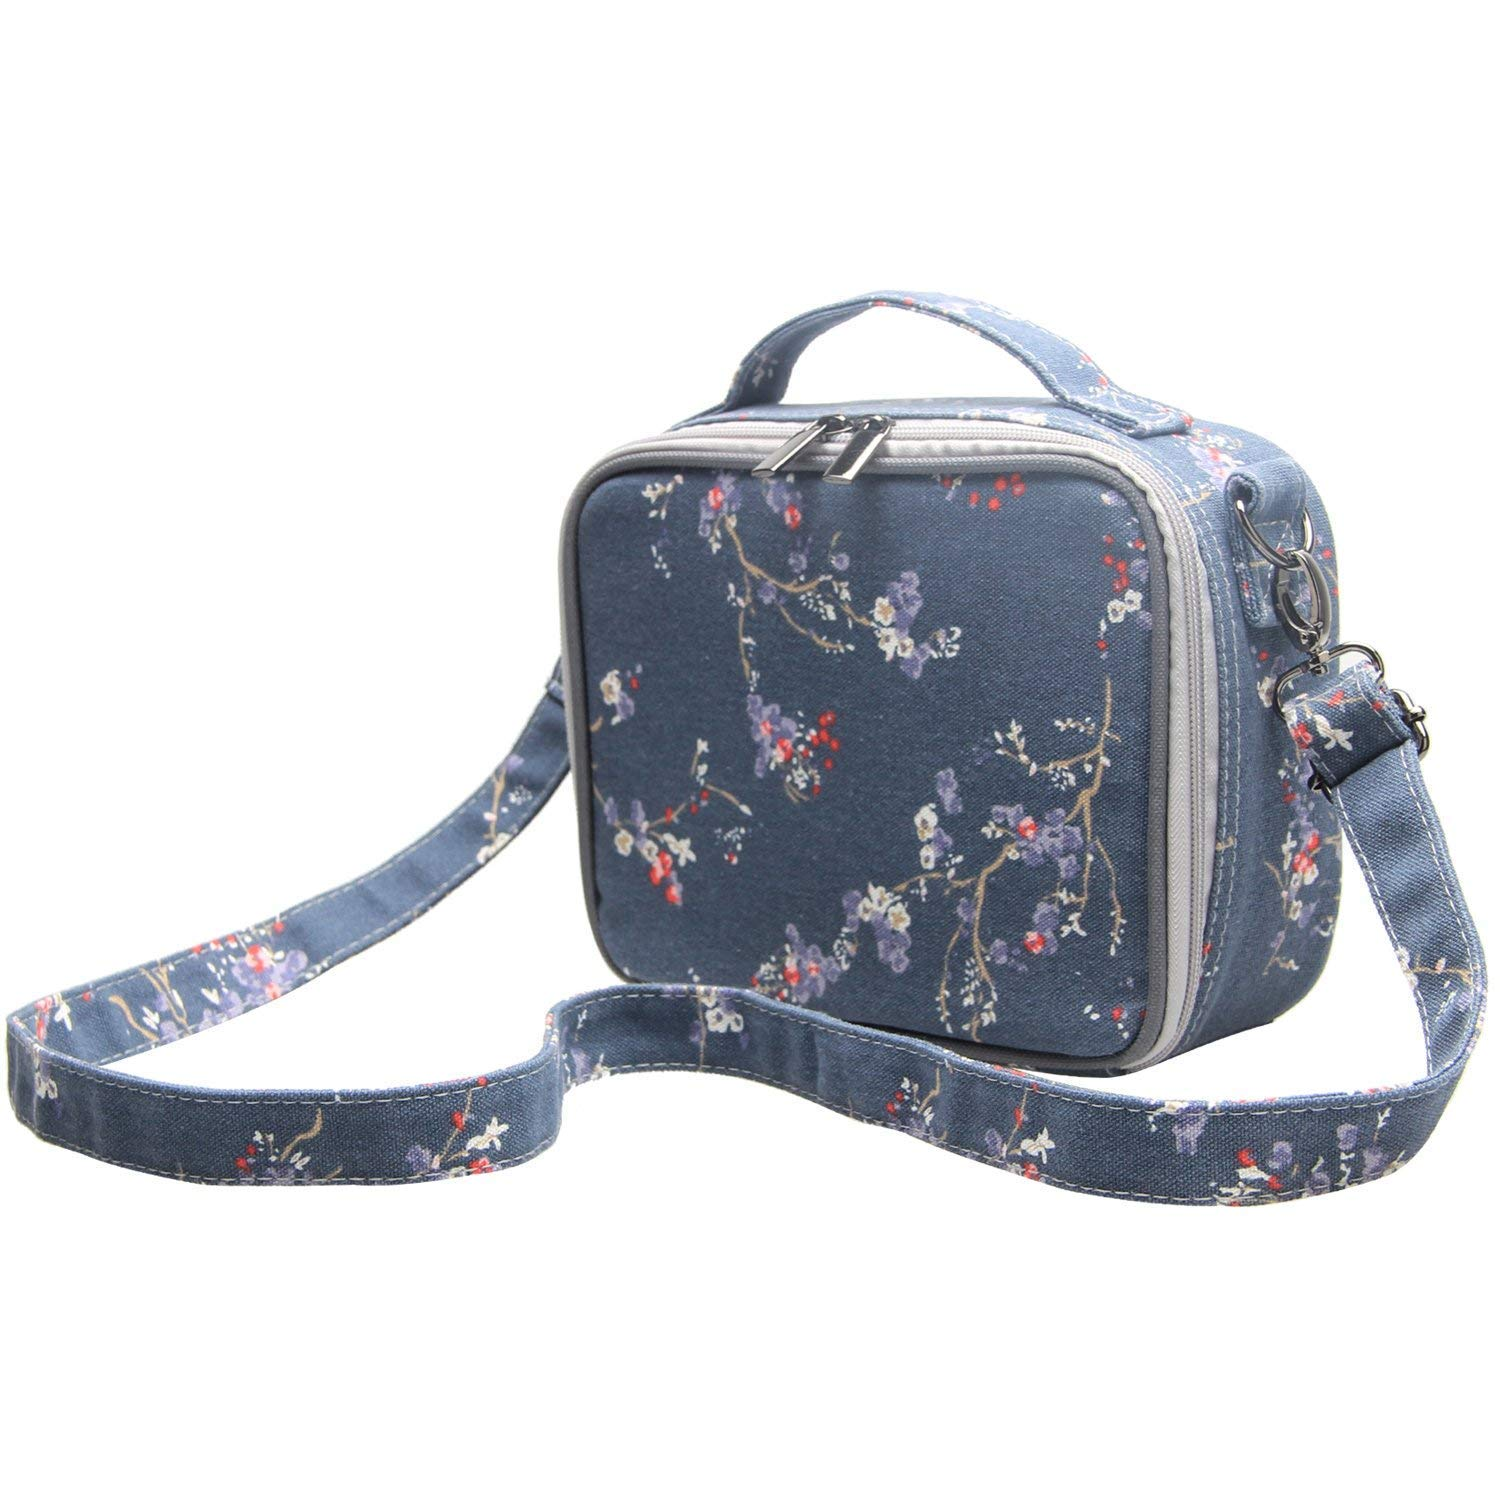 Teamoy Colored Pencils Case, Travel Gadget Bag with Handle and Shoulder Strap, Stylish and Multi-Purpose, Perfect Size for Travel or Daily Use-NO Pencils Included, Plum Flowers